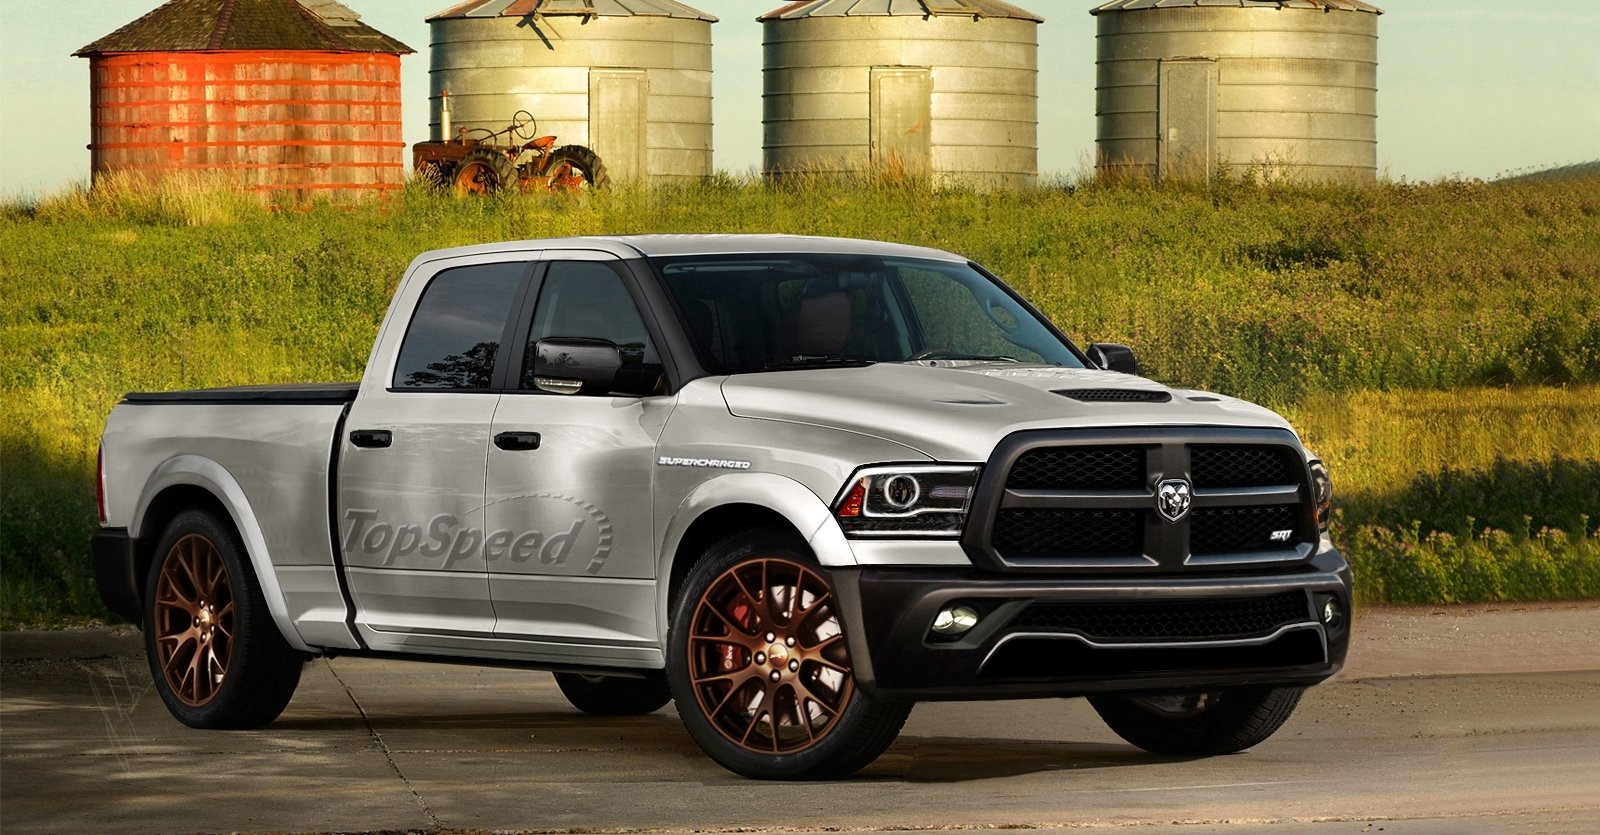 2017 ram 1500 srt hellcat picture 581074 car review top speed. Black Bedroom Furniture Sets. Home Design Ideas